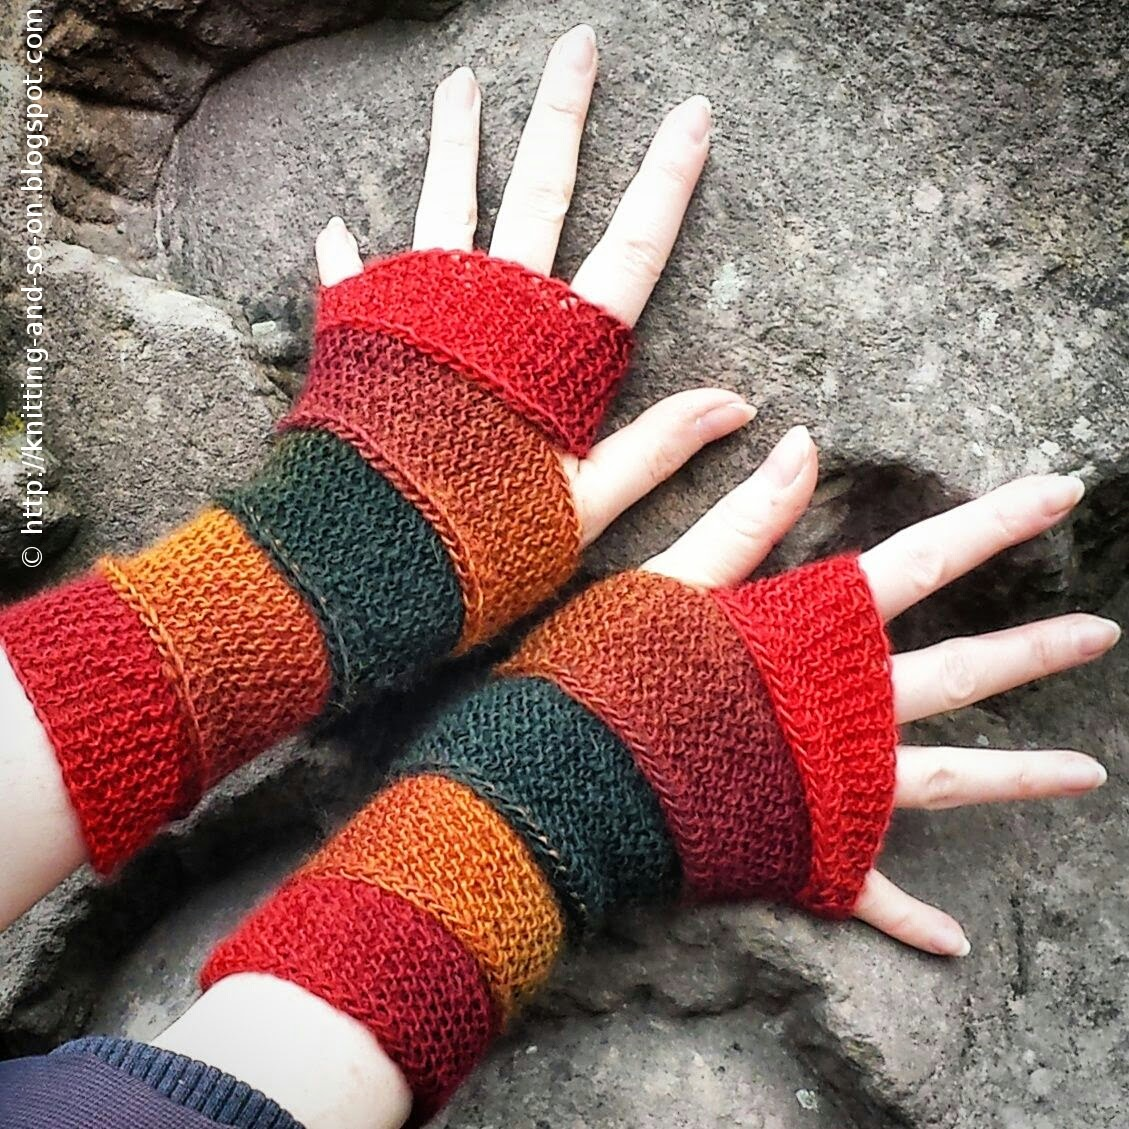 Fingerless Gloves Knitting Pattern Ideas You Should Try | My Filing ...